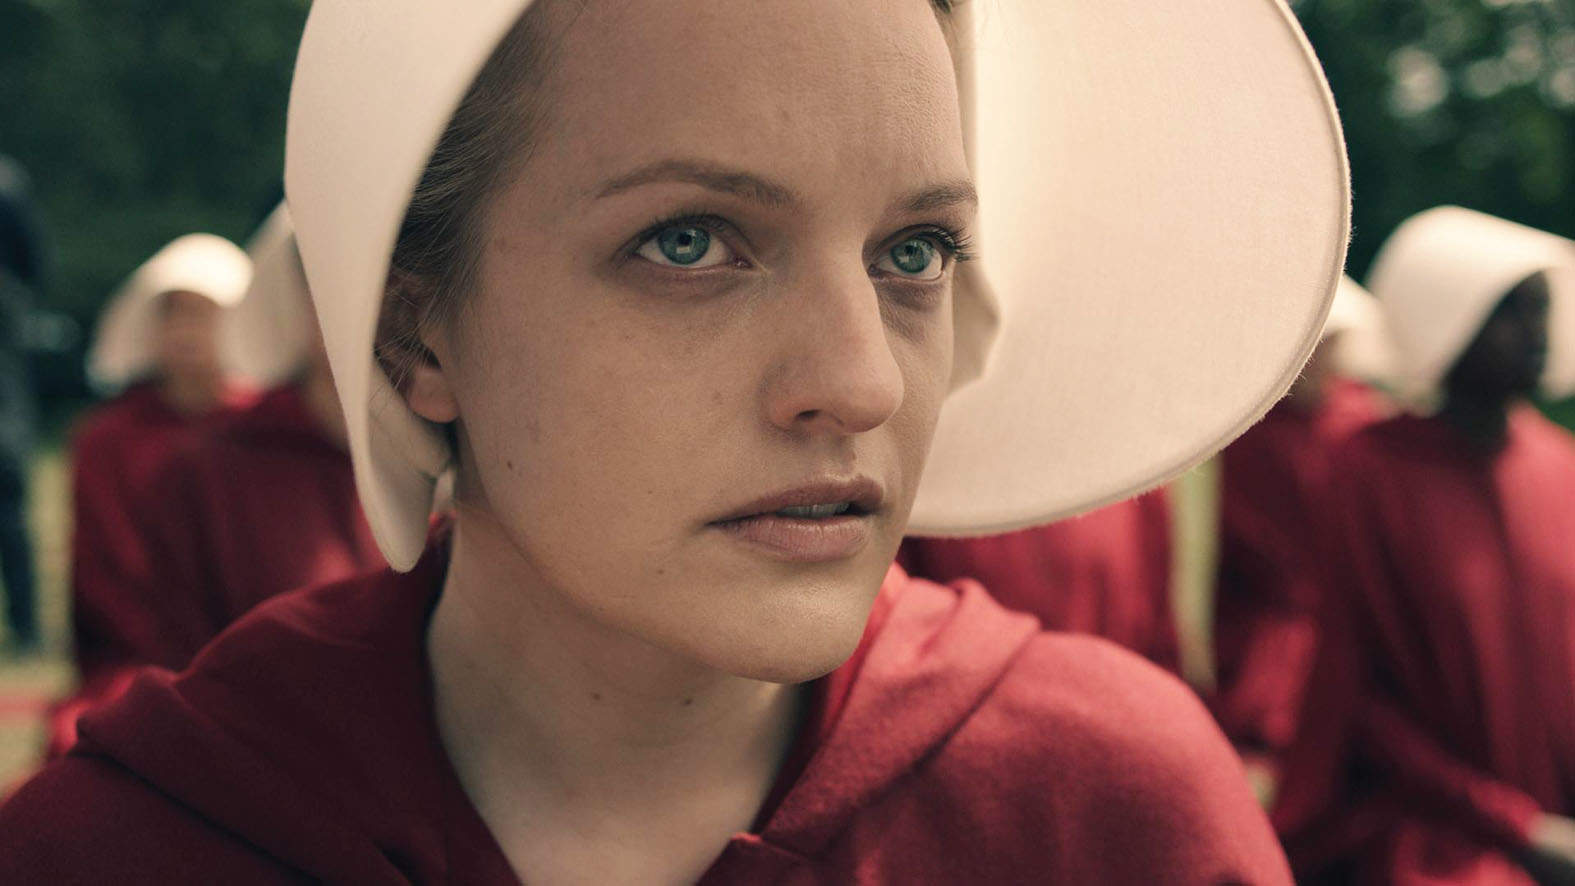 The Handmaid's Tale could be straight out of Raqqa